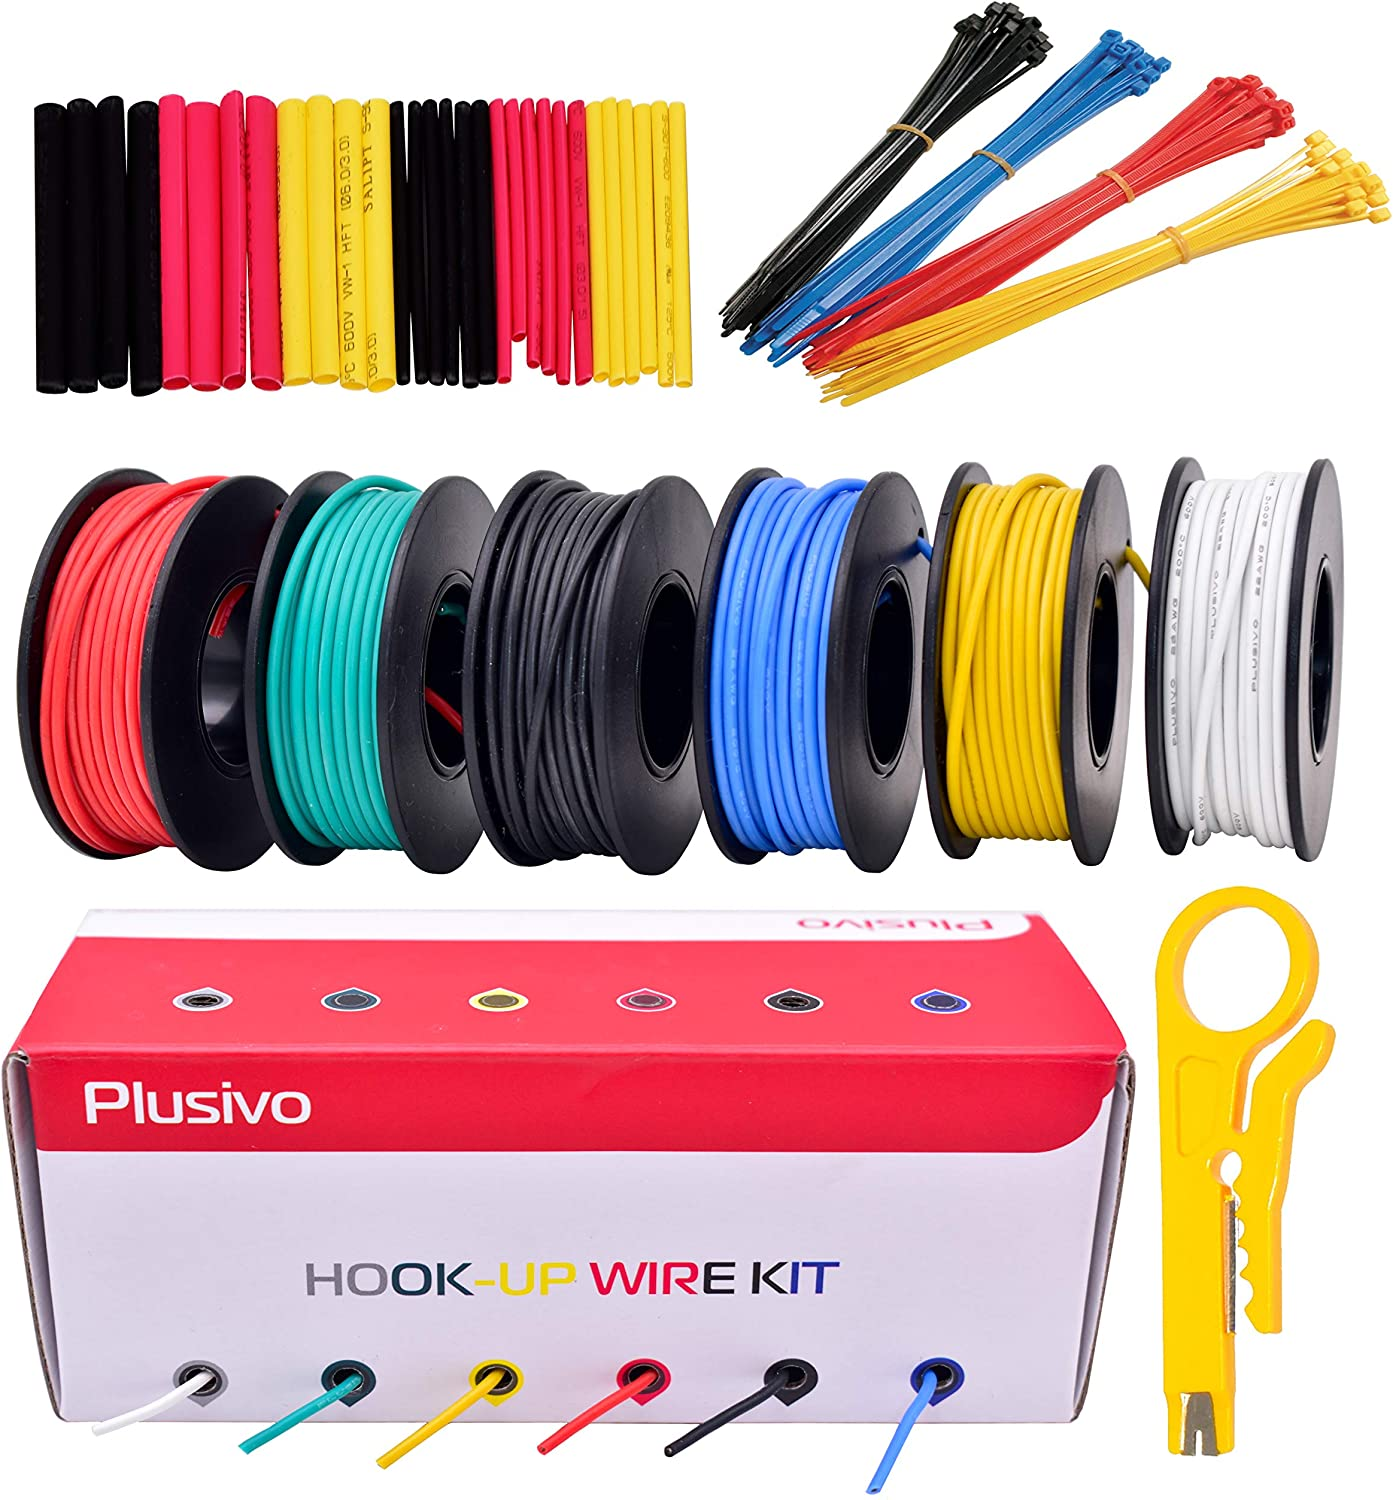 22GA Hook up Wire Kit - 22AWG Silicone Wire - 600V Tinned Stranded Electrical Wire of 6 Different Colors x 23 ft each - Black, Red, Yellow, Green, Blue, White - Wire Assortment Kit from Plusivo